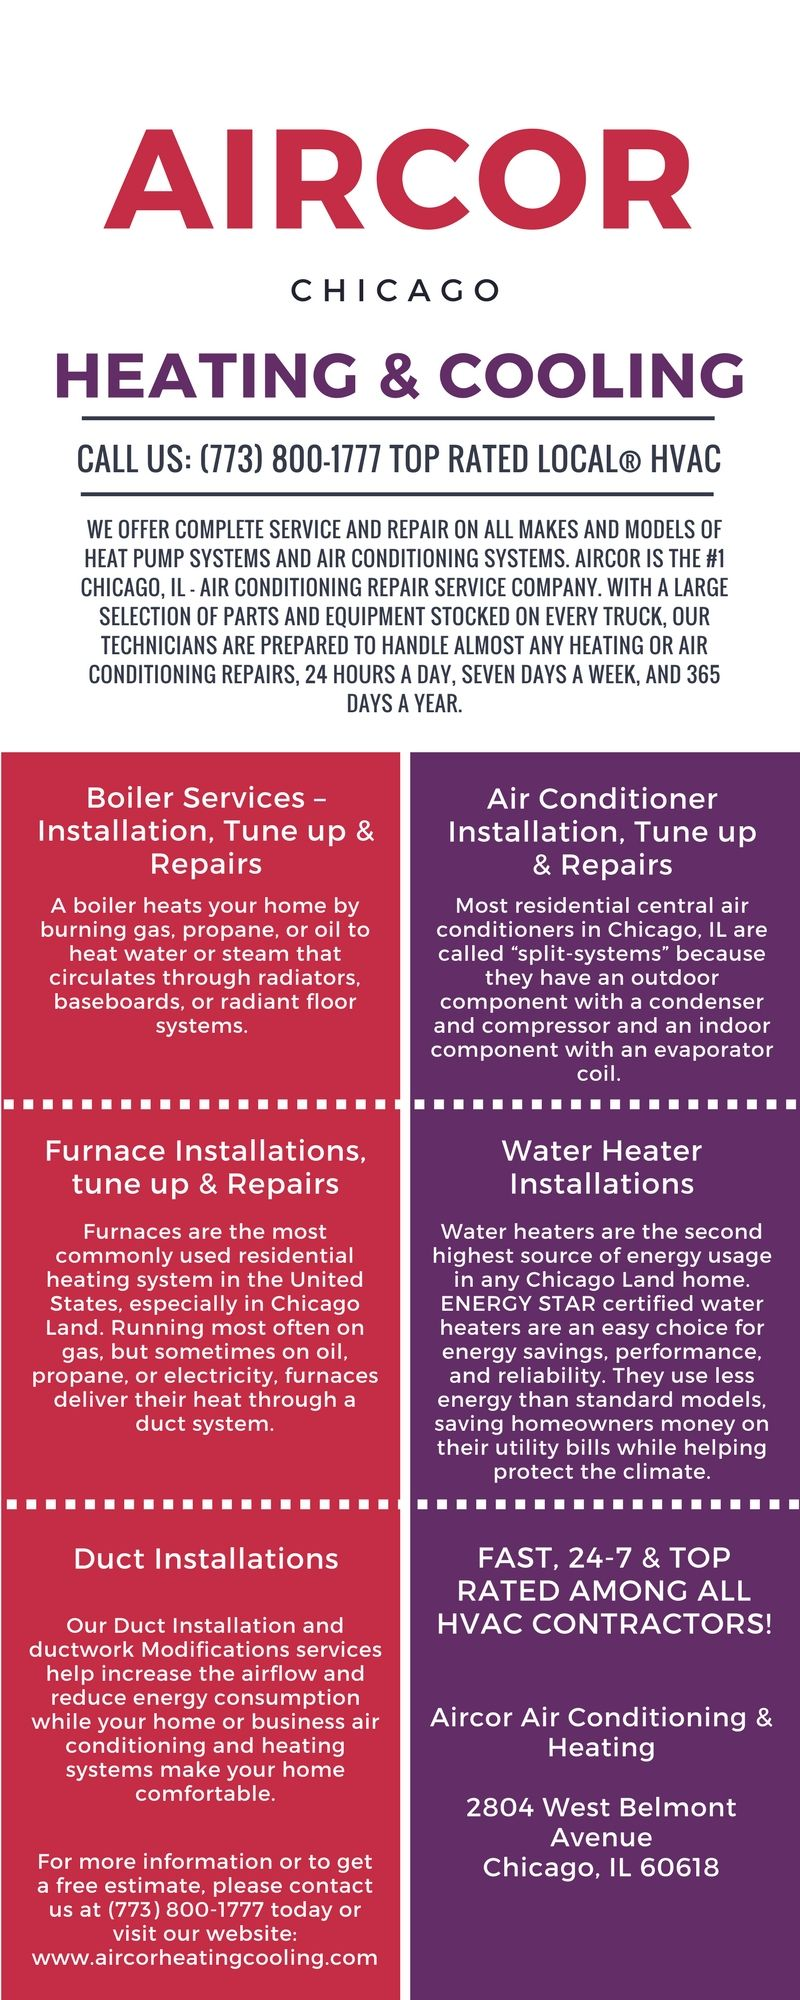 Aircor Chicago's Premier Air Conditioning and Heating